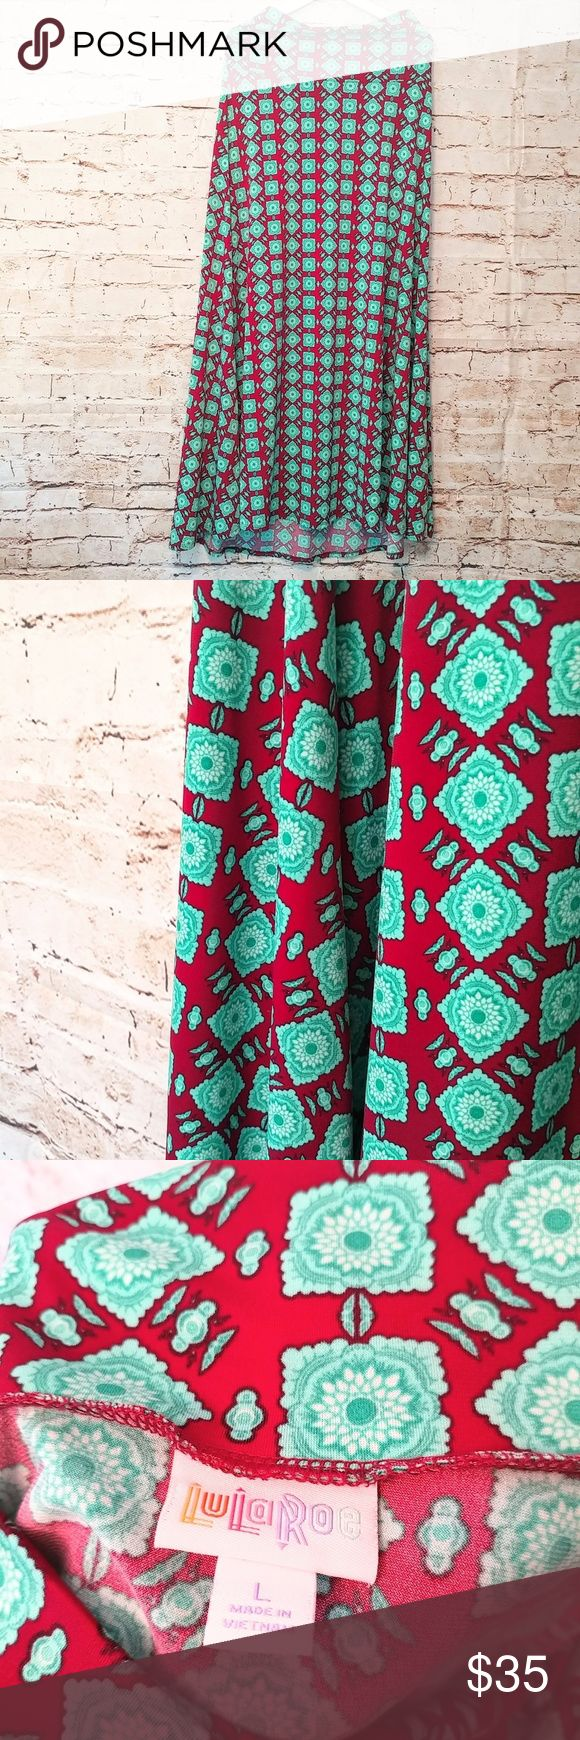 New! Lularoe Red & Turquoise Maxi Skirt Large This is beautiful! Dark Red with Turquoise Floral/ Aztec print. Lularoe Maxi made in Vietnam. 95% polyester, 5% spandex. Size Large. Stretchy material. NWOT. NEVER WORN OR WASHED! LuLaRoe Skirts Maxi